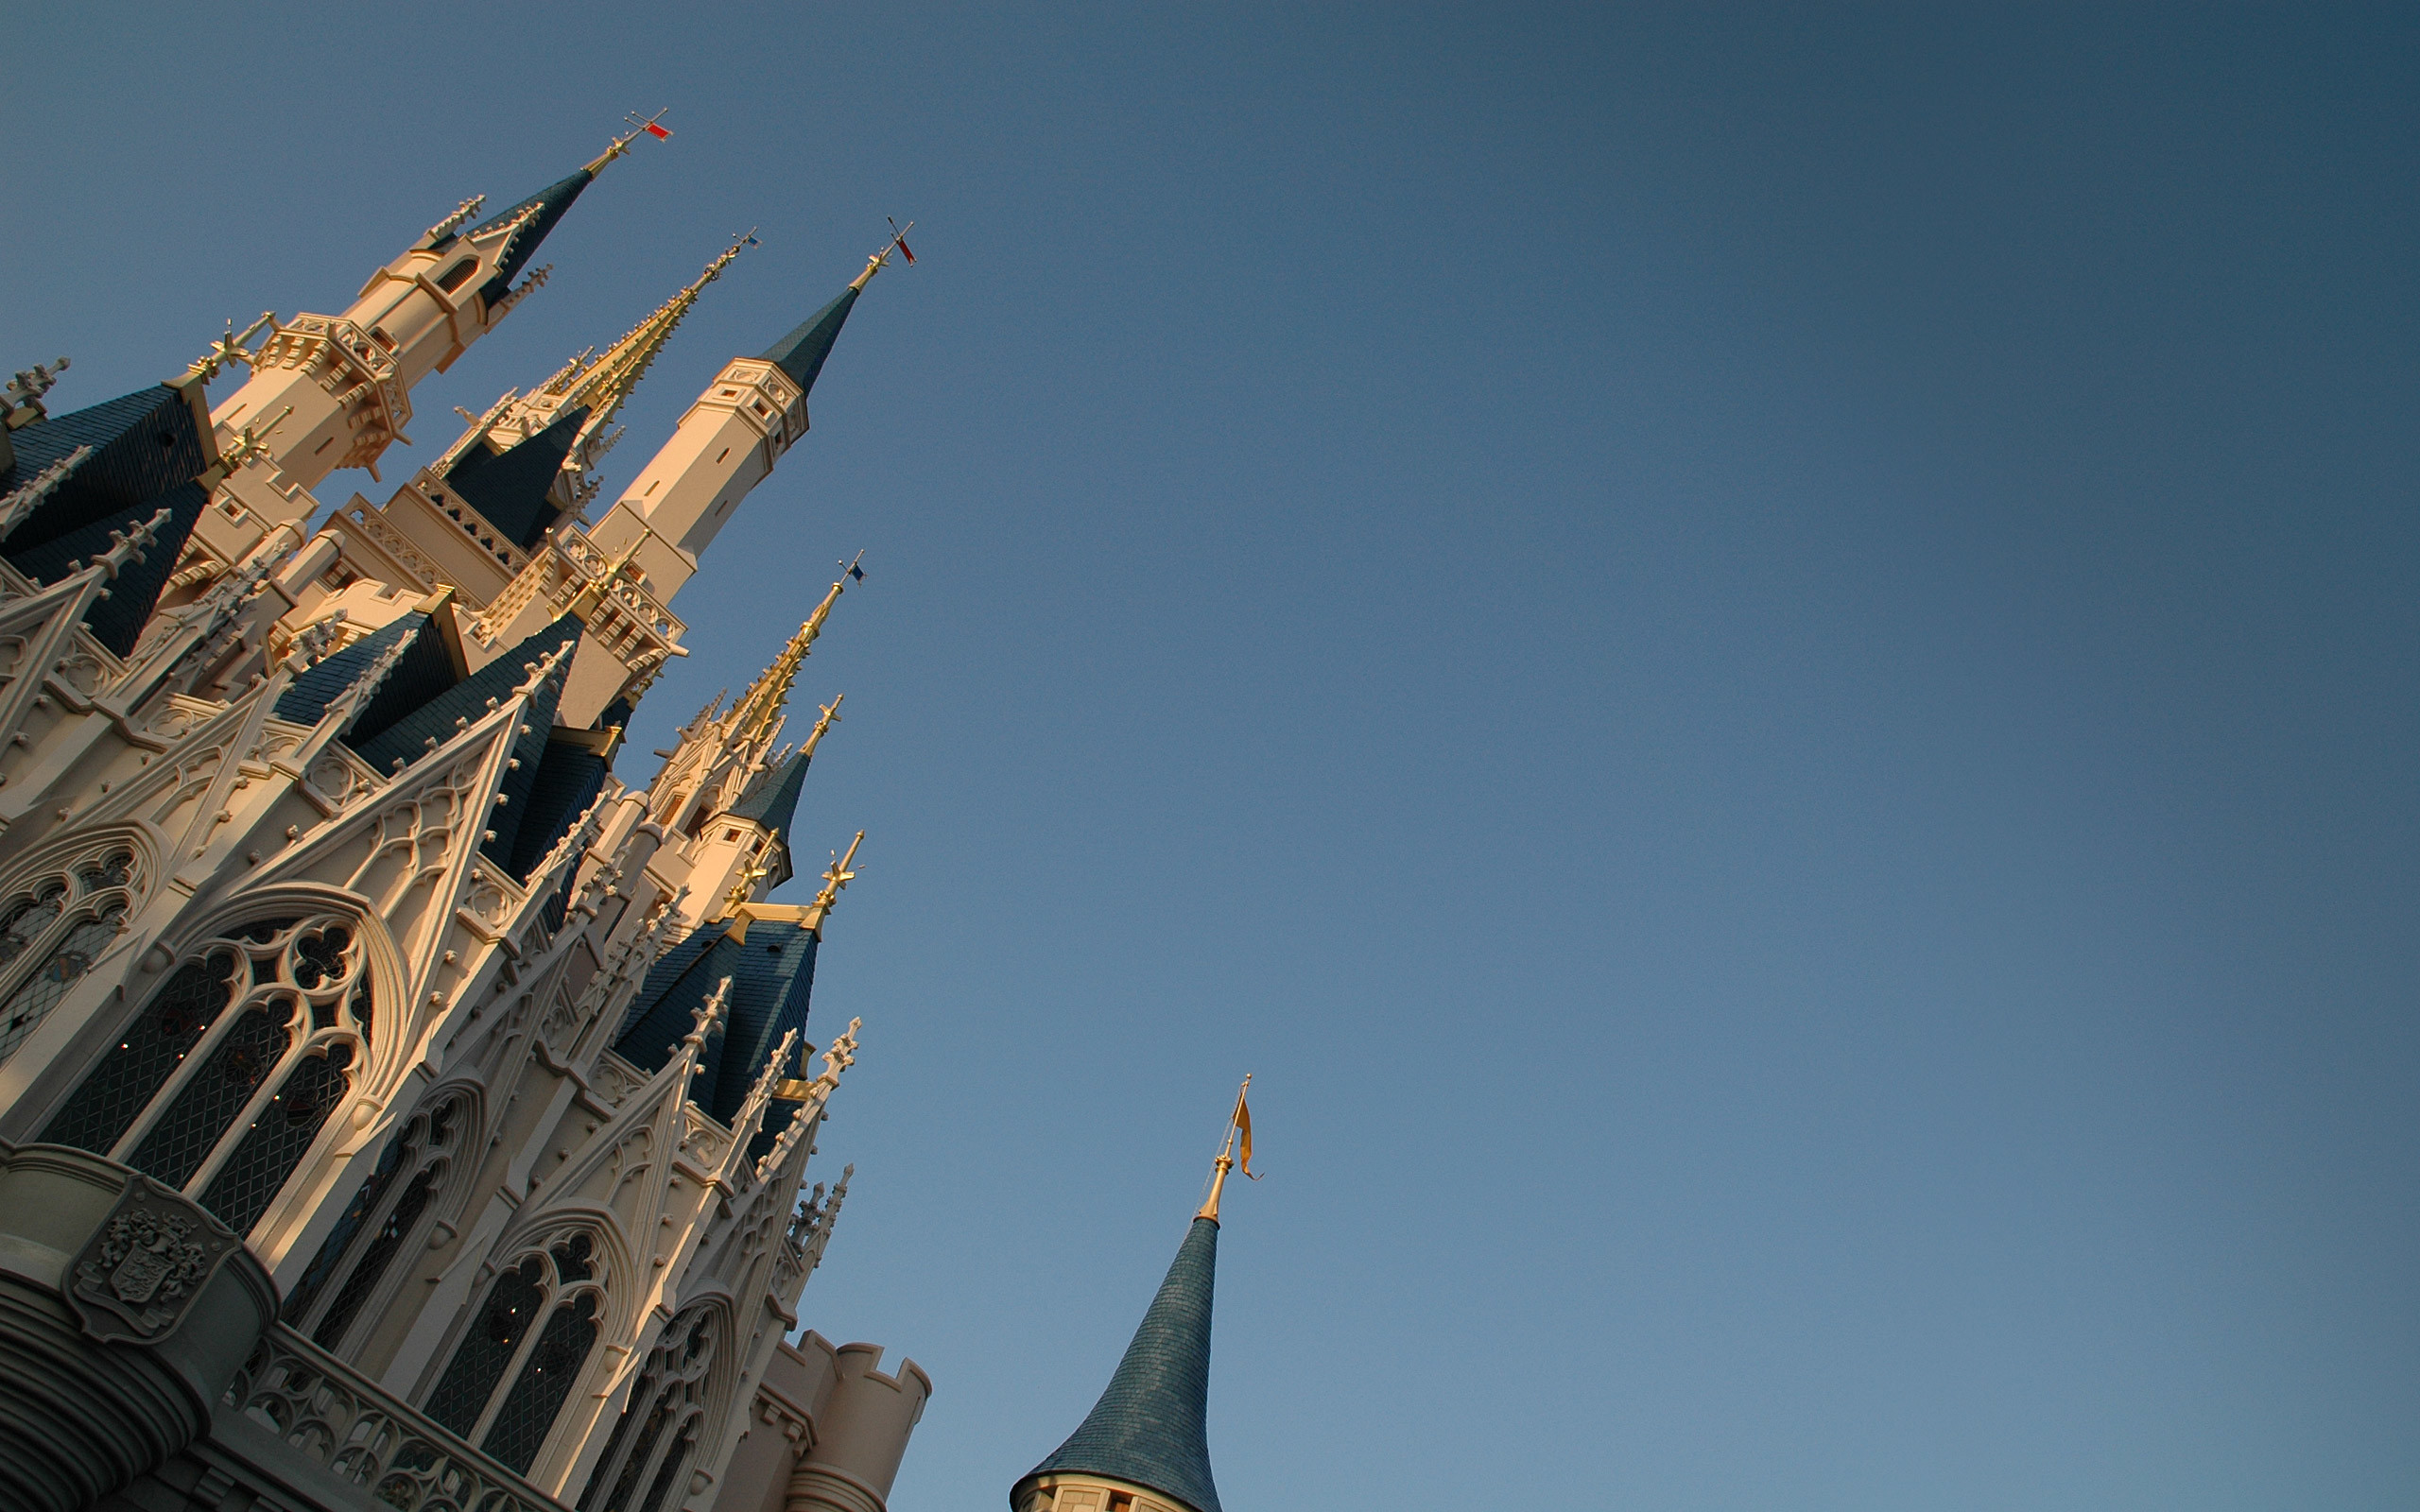 2560x1600 Walt Disney World Castle by pwn247 Walt Disney World Castle by pwn247